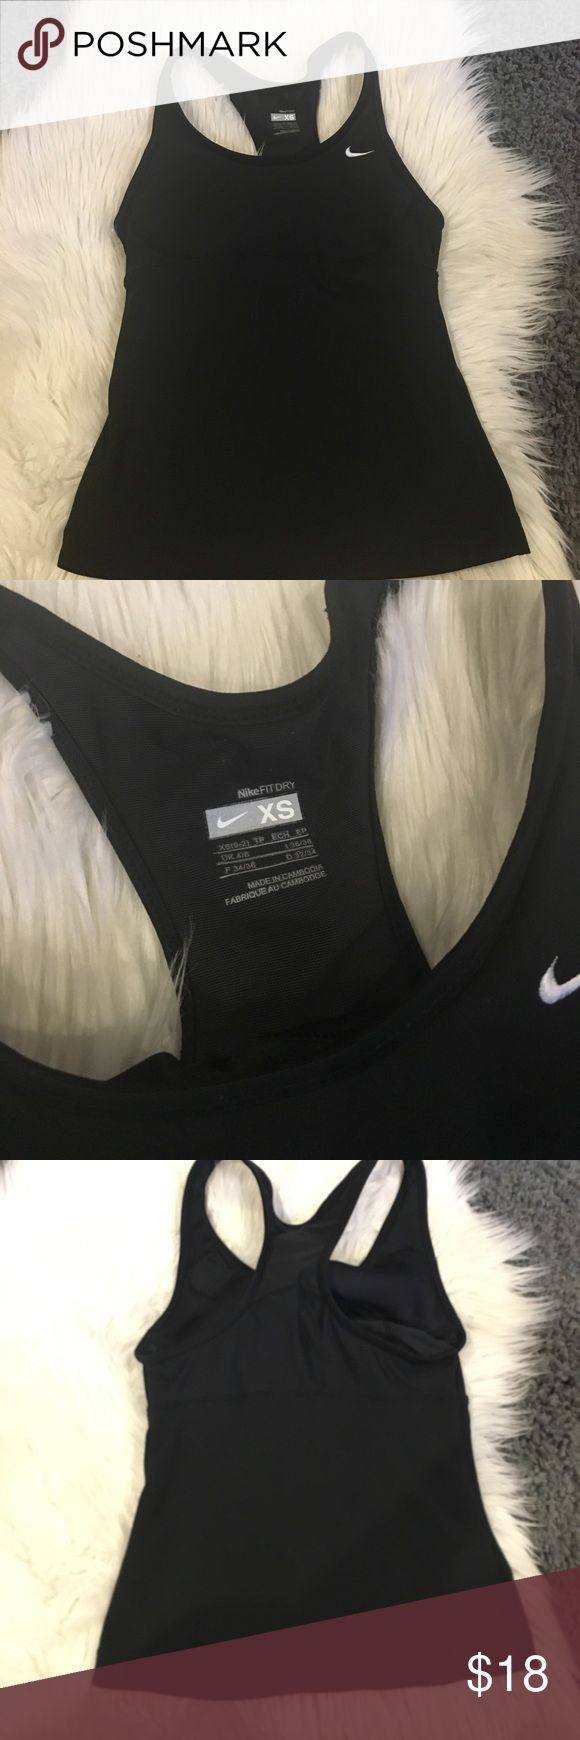 Nike Dri Fit Shirt Nike Dri Fit Shirt with built in sports bra ...Size Xs ... Excellent used condition ...Any question please ask ... Bundle & Save Nike Tops Tank Tops